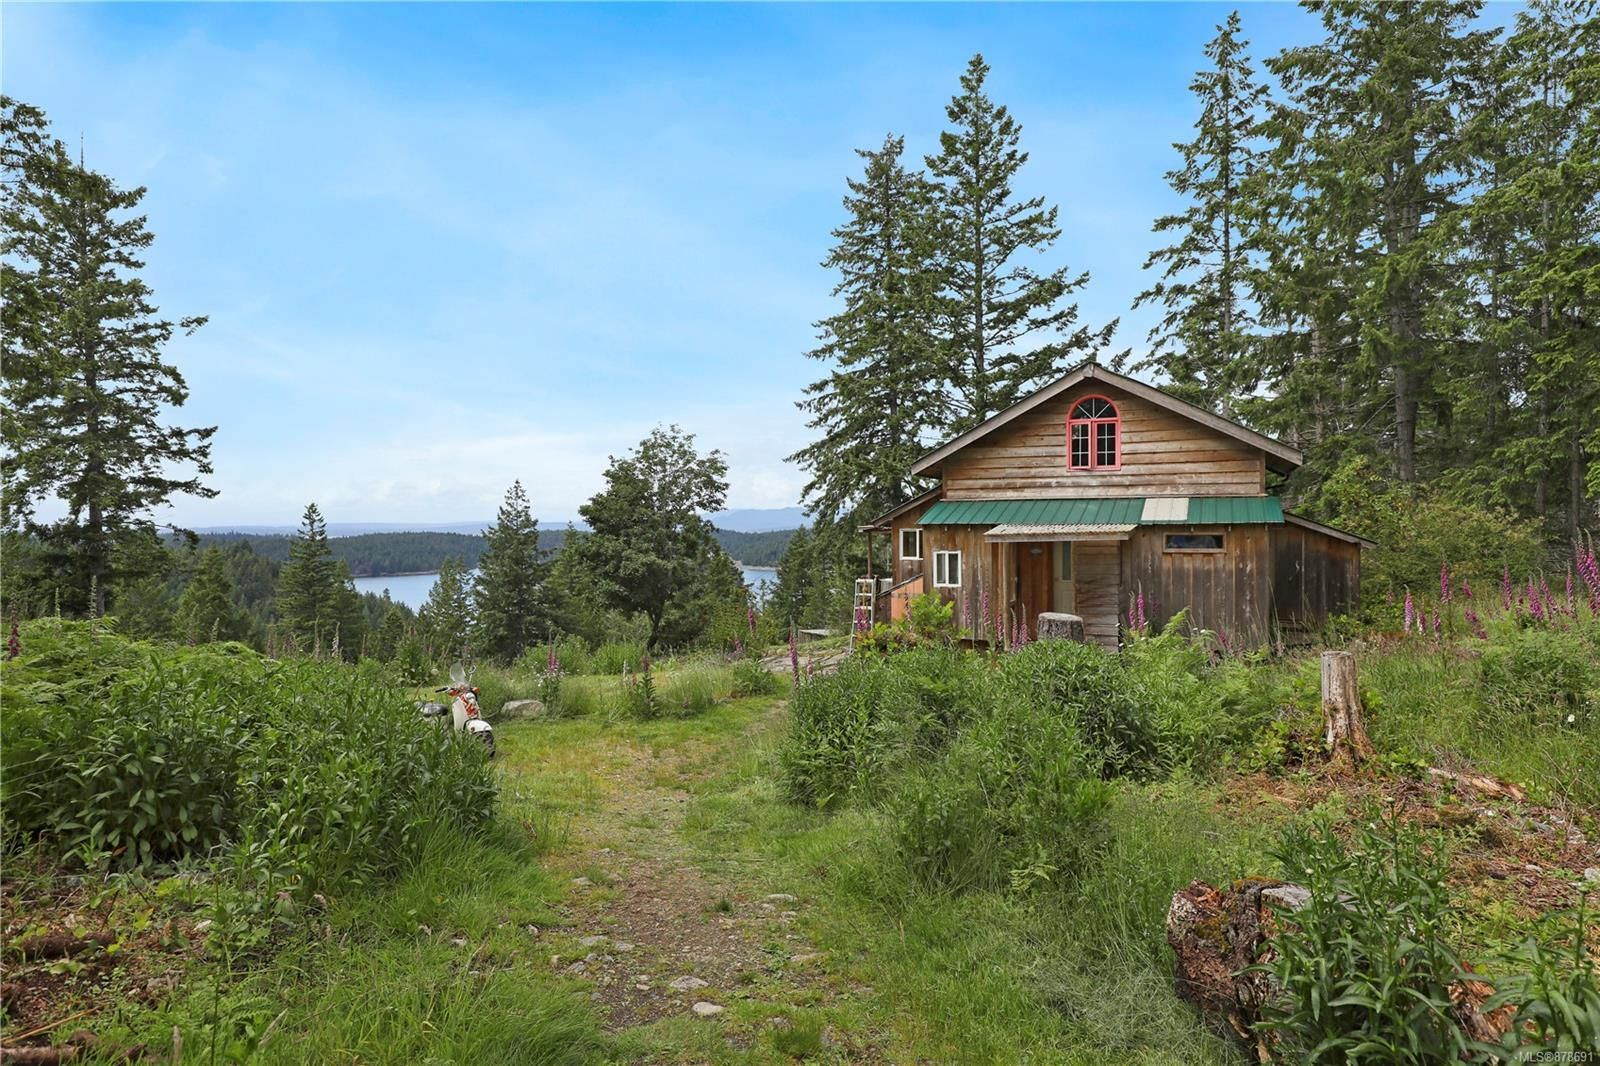 Photo 35: Photos: 979 Thunder Rd in : Isl Cortes Island House for sale (Islands)  : MLS®# 878691